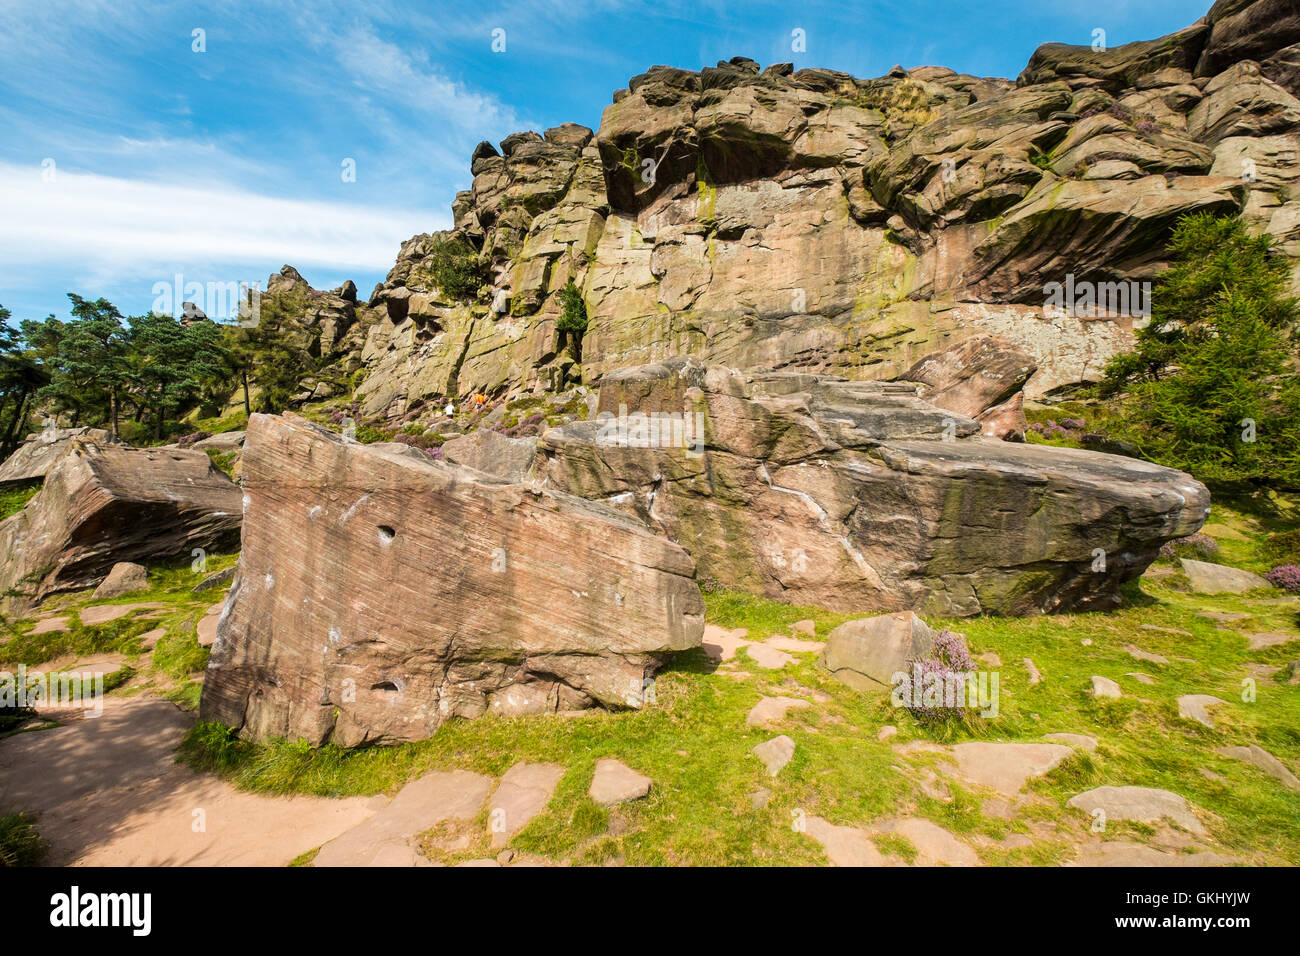 The Upper Tier of The Roaches, a popular gritstone climbing crag in the Peak District National Park - Stock Image